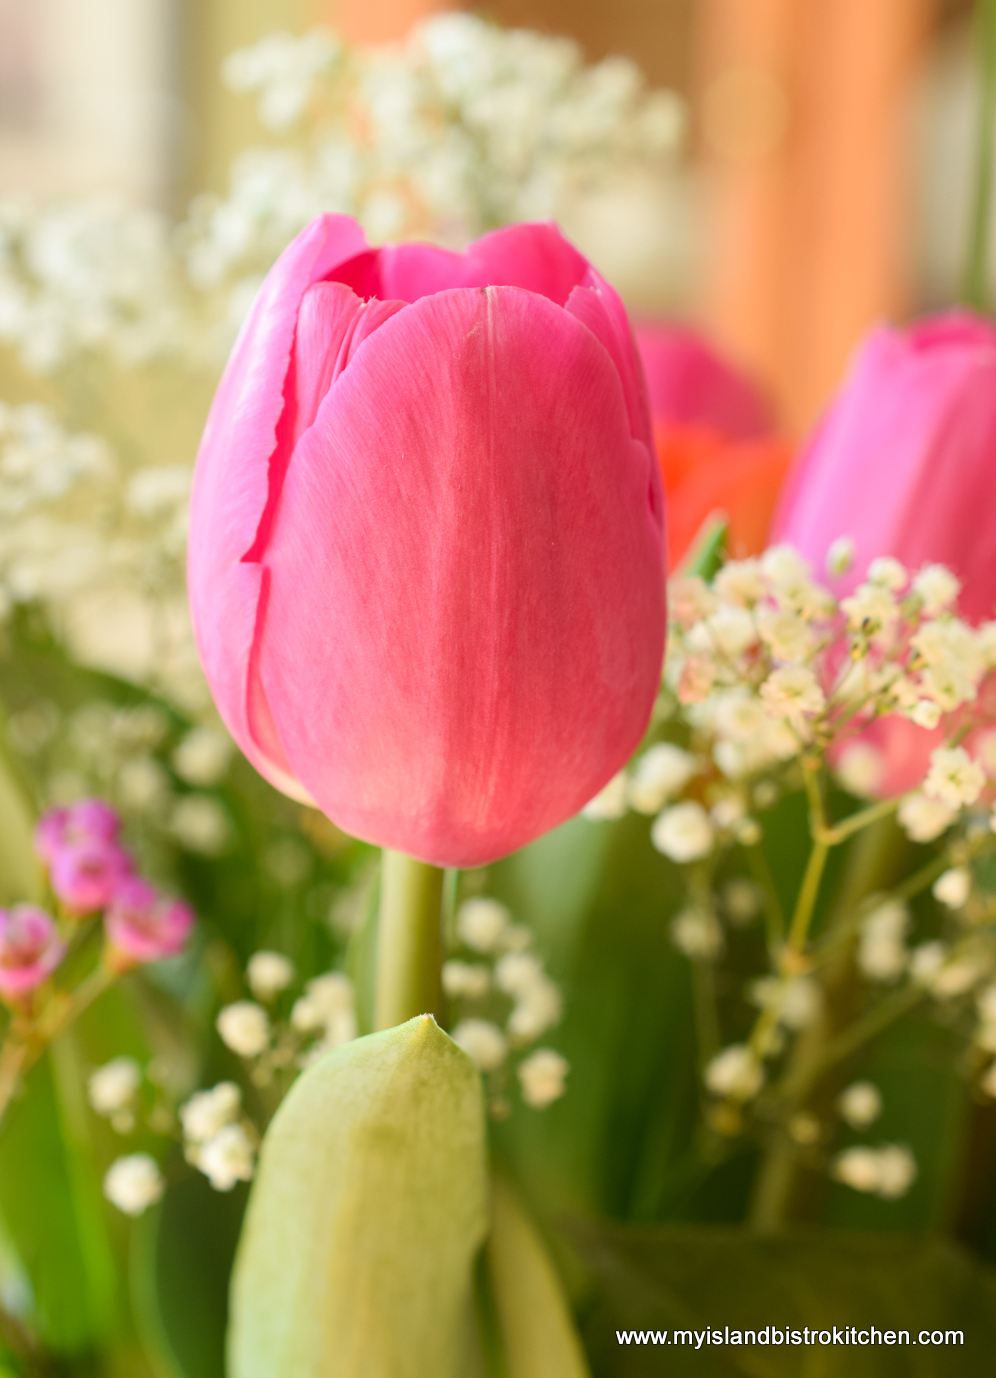 Single bright pink tulip stem